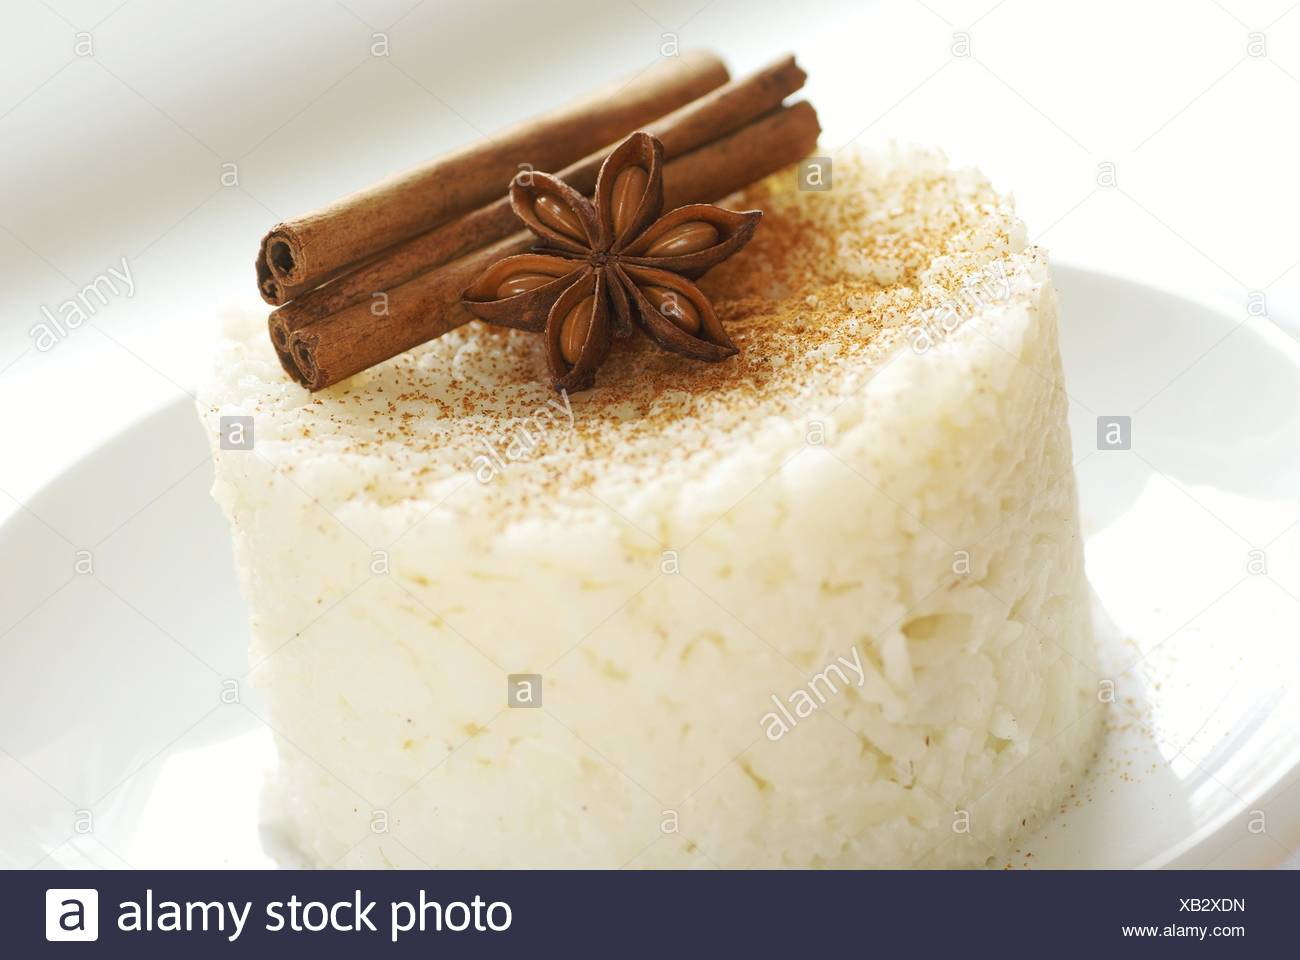 Sweet rice pudding with cinnamon on white plate. - Stock Image